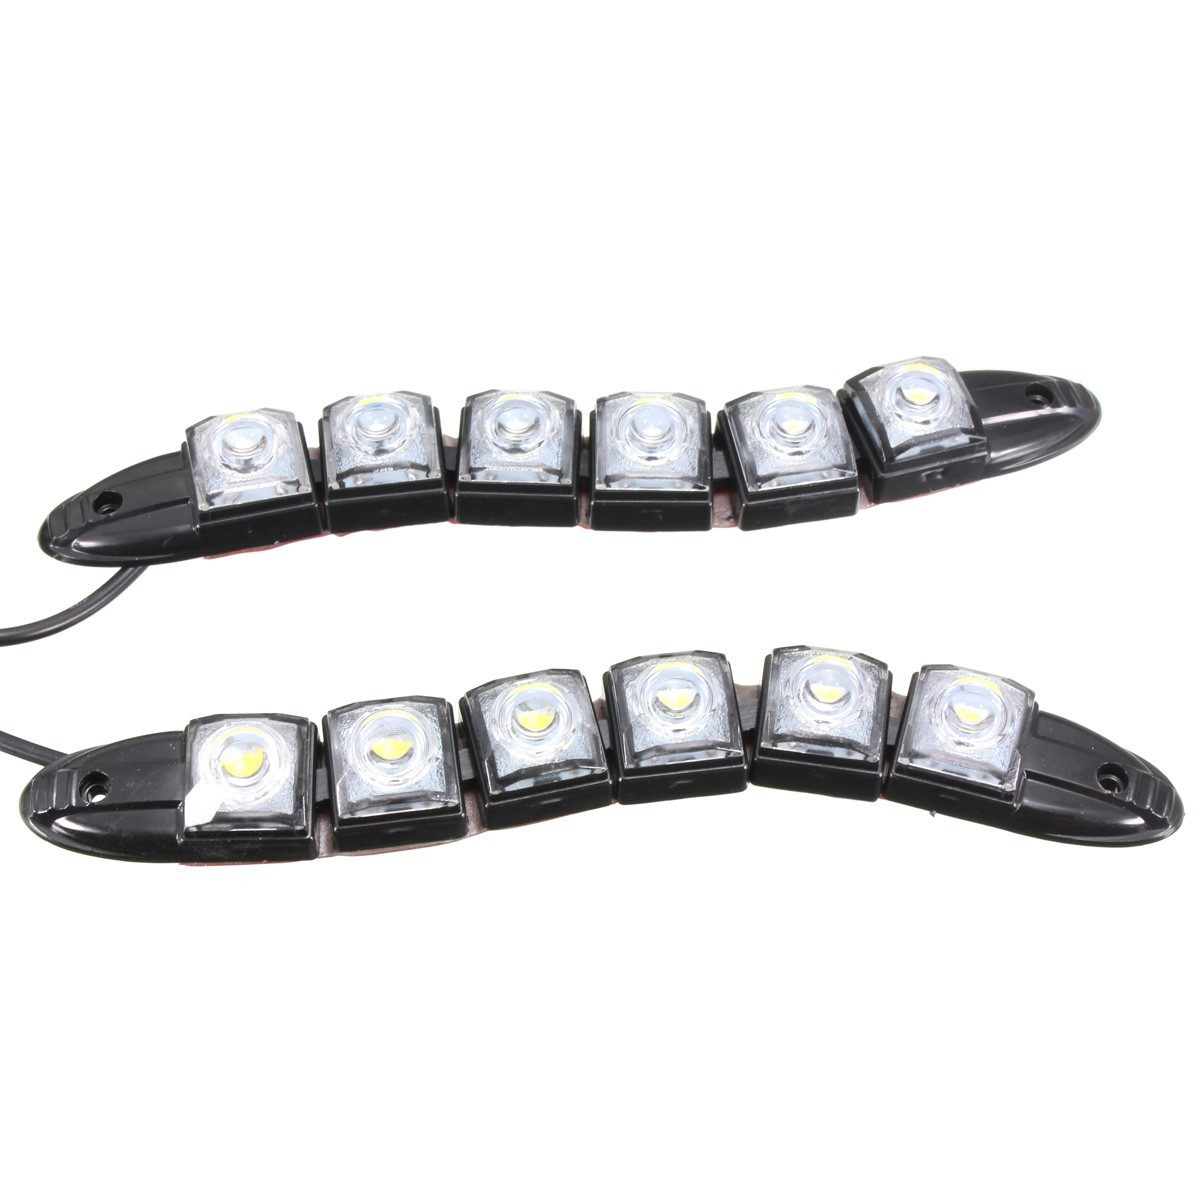 6 8 9 12 14 16 Led Super White Drl Daytime Running Light